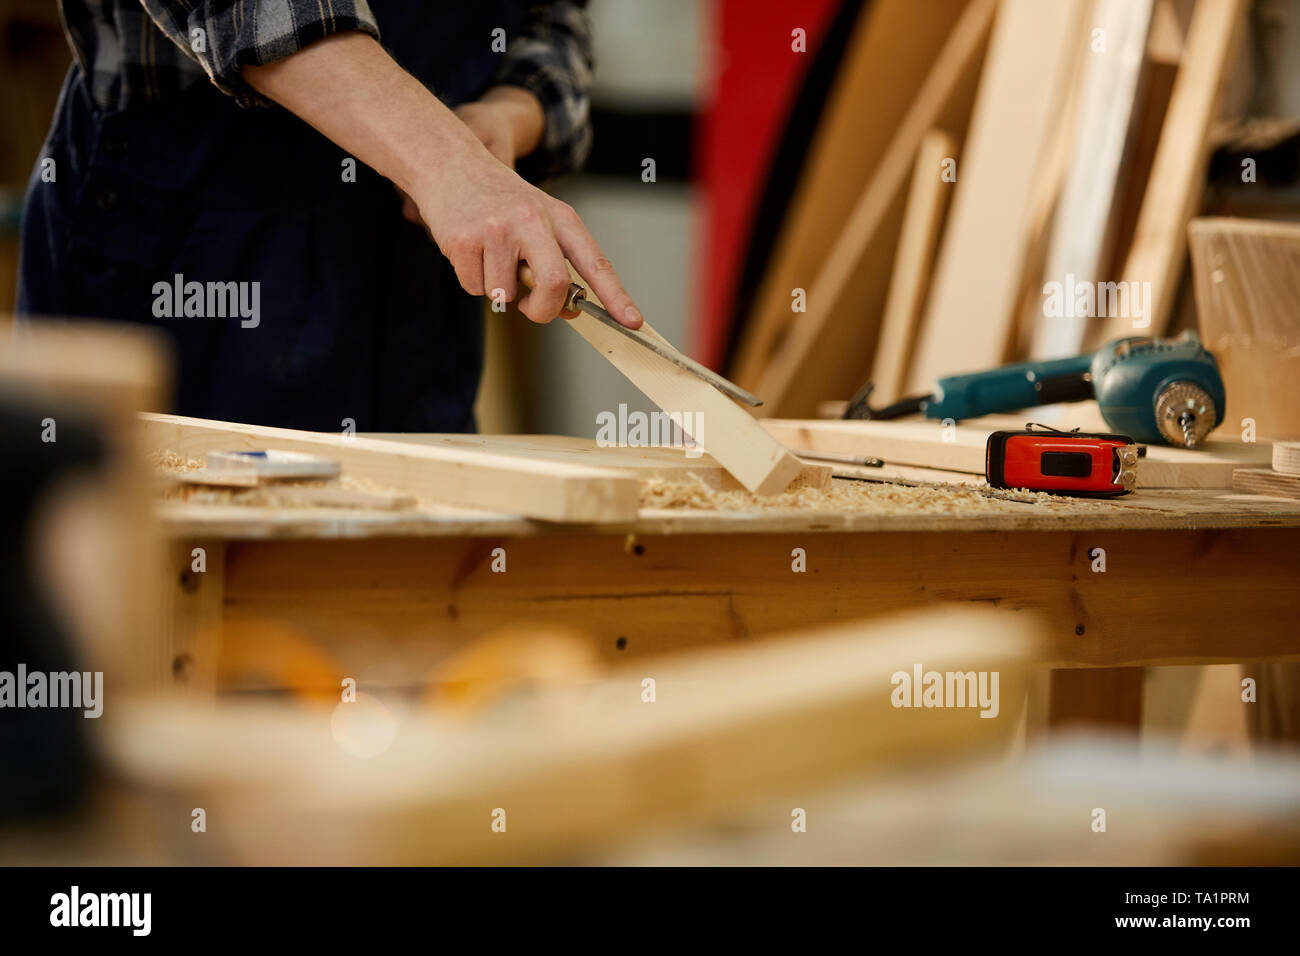 Closeup of unrecognizable carpenter carving wood while working in joinery lit by sunlight, copy space - Stock Image